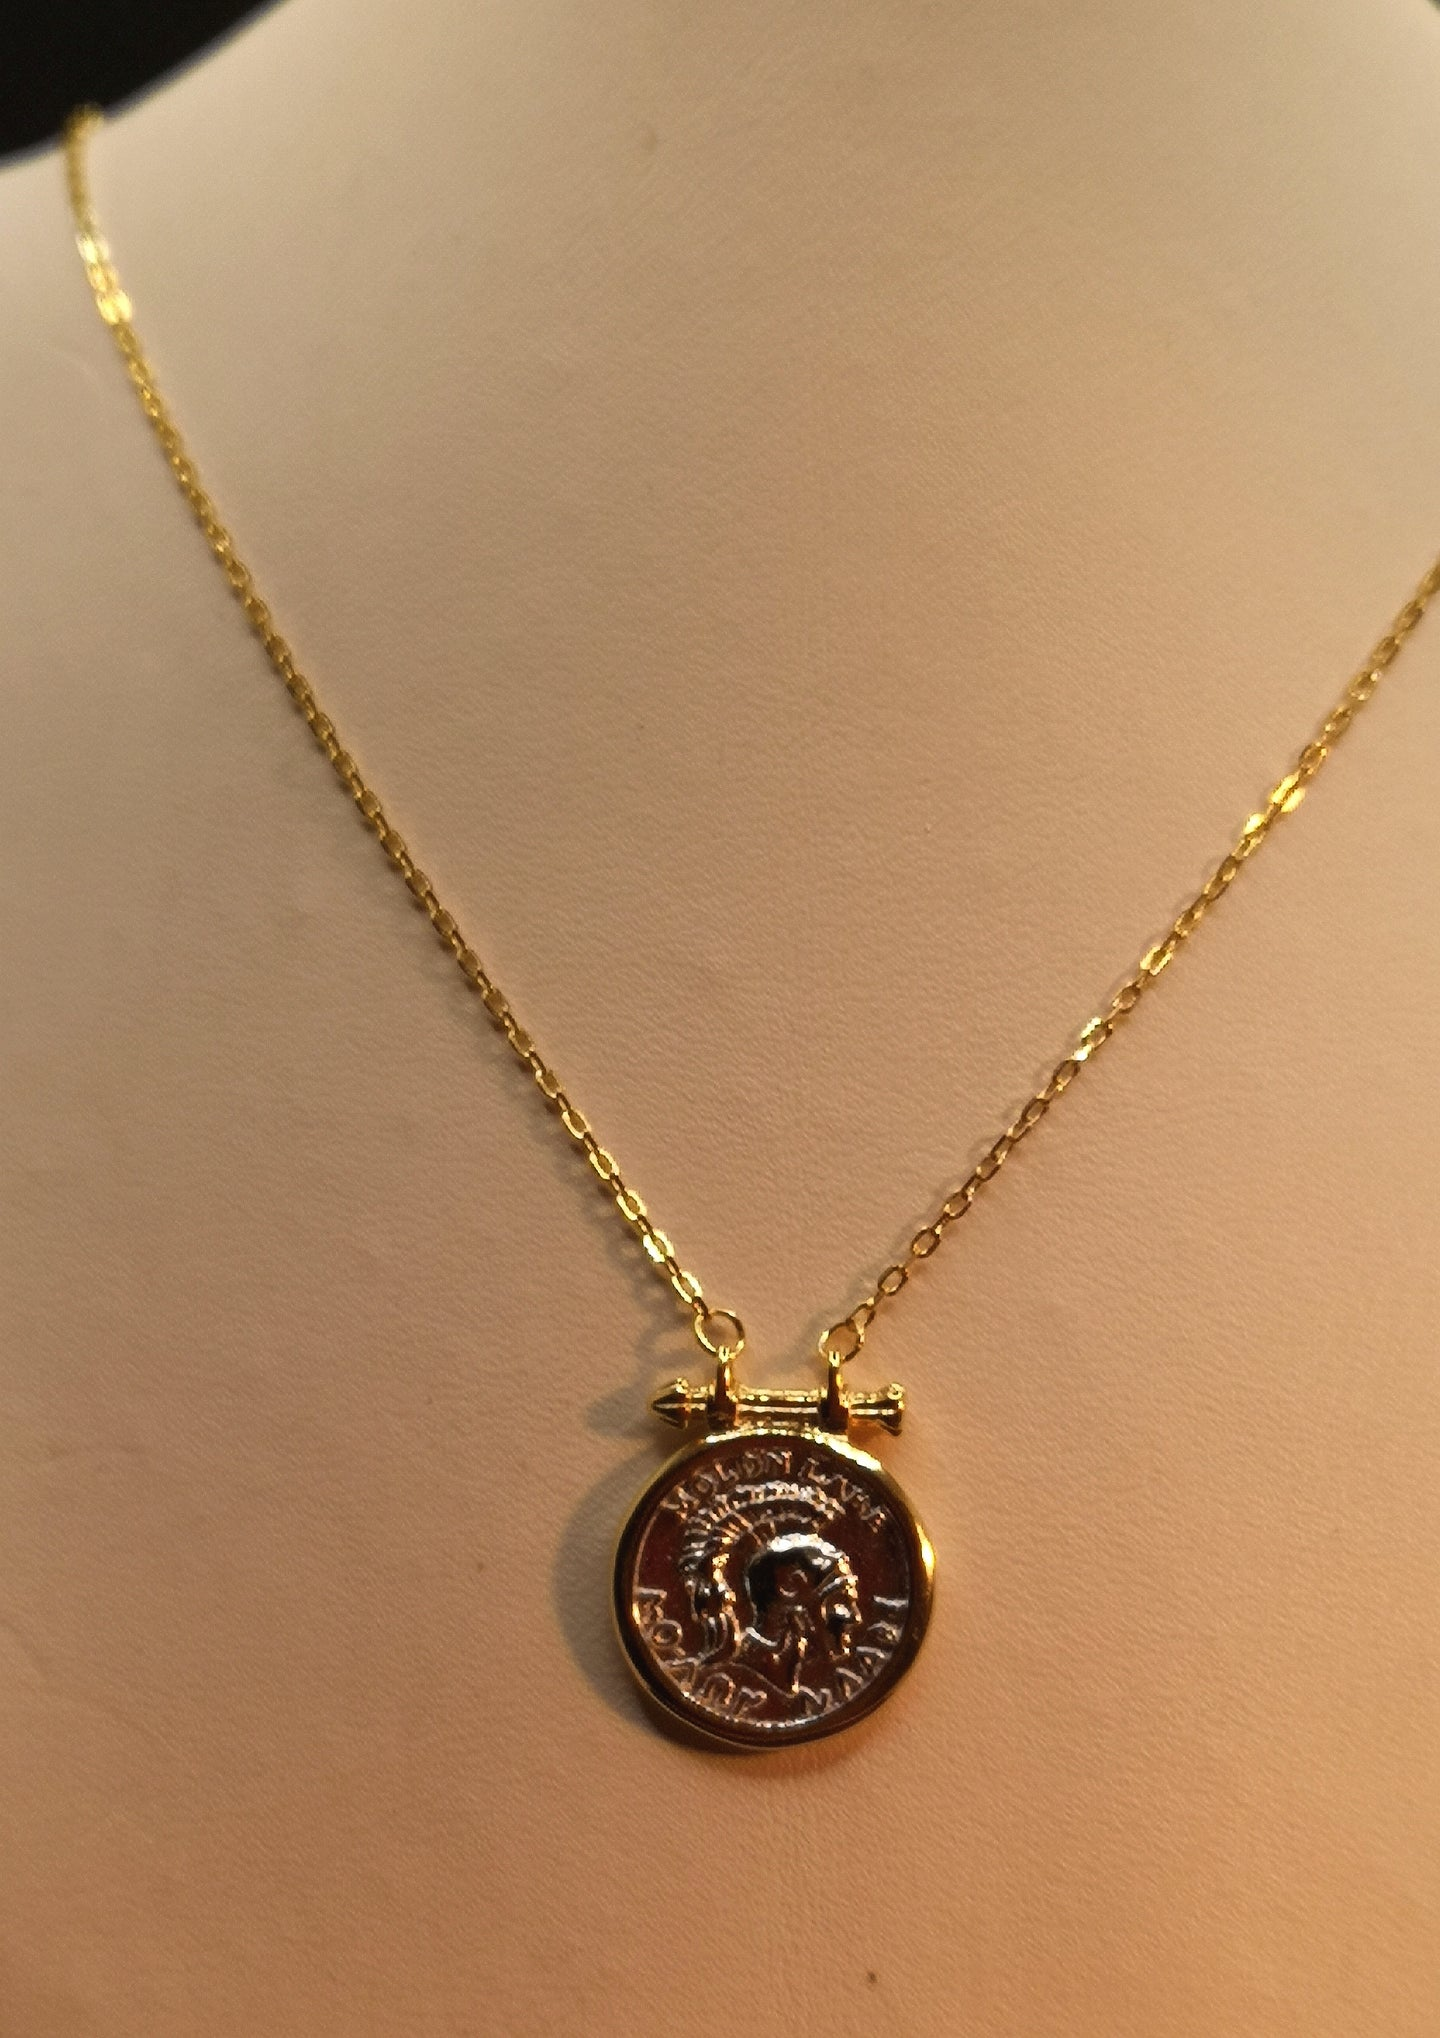 Two tone, silver and gold plate coin necklace in sterling silver with rhodium and gold finish